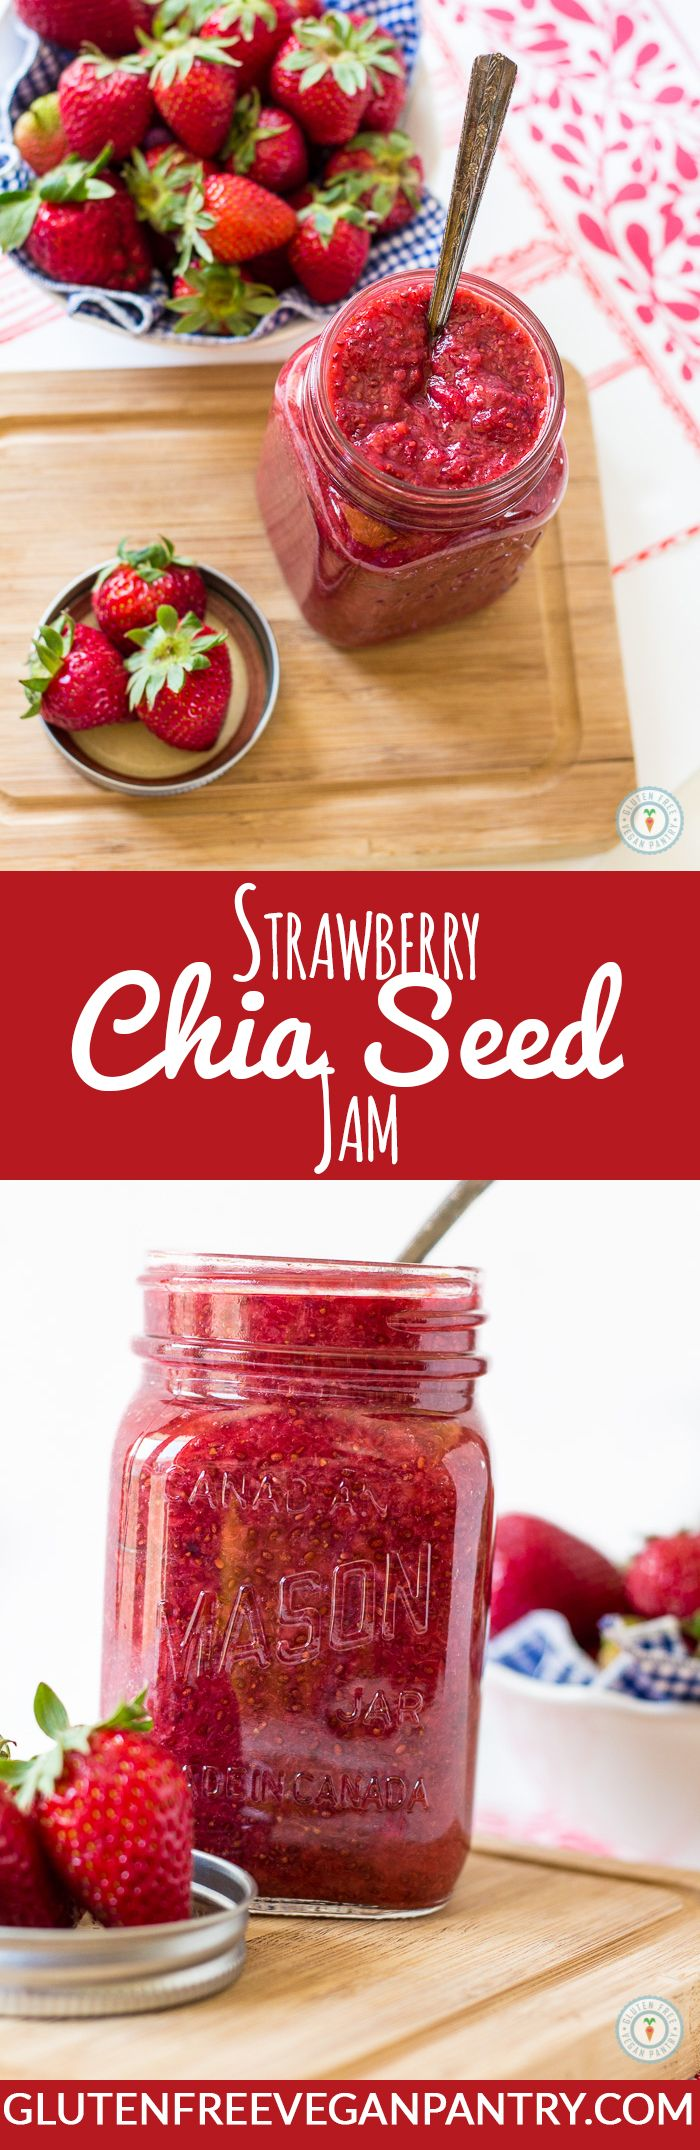 Strawberry Chia Seed Jam – Super Easy Sunday